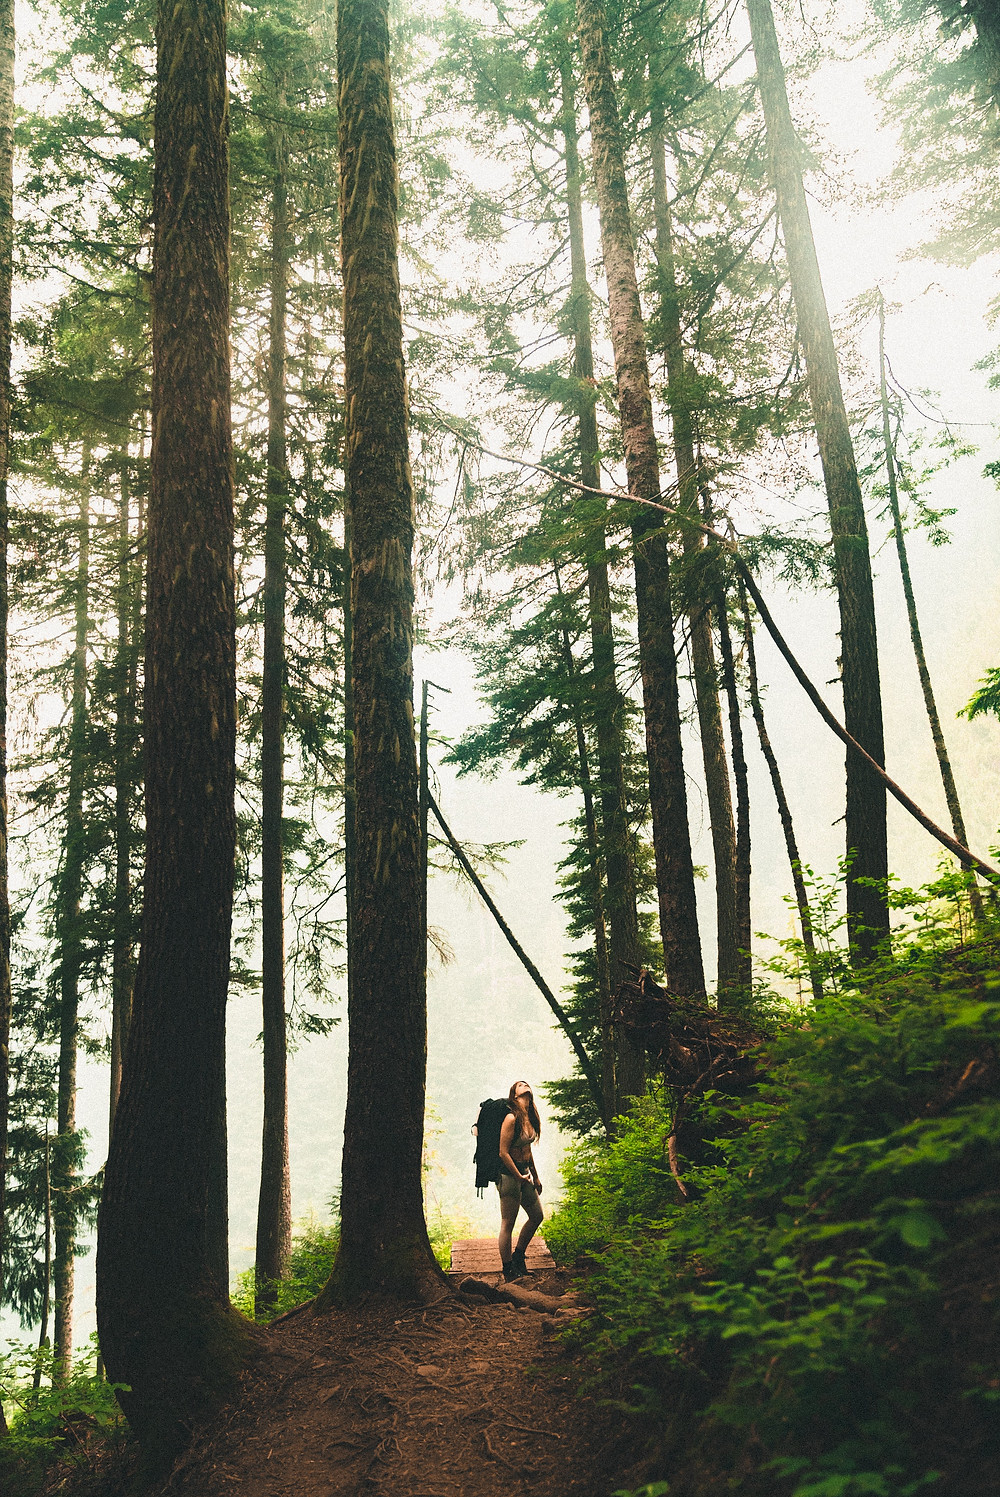 Hiker-looking-up-to-forest-canopy-on-hike